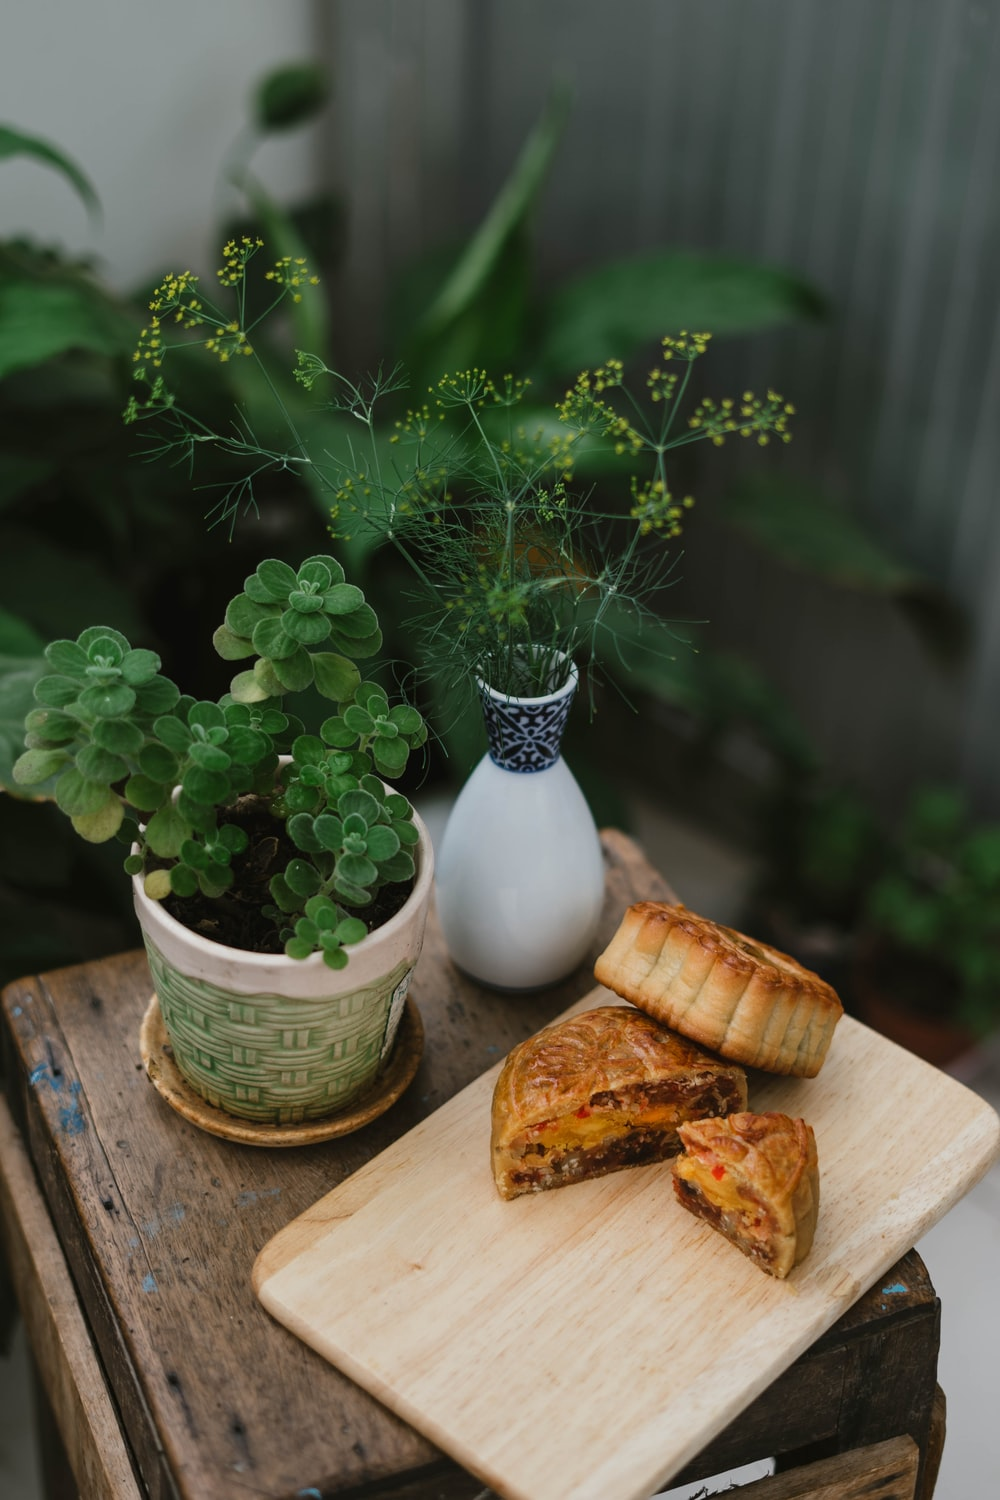 baked moon cake on tray beside plants